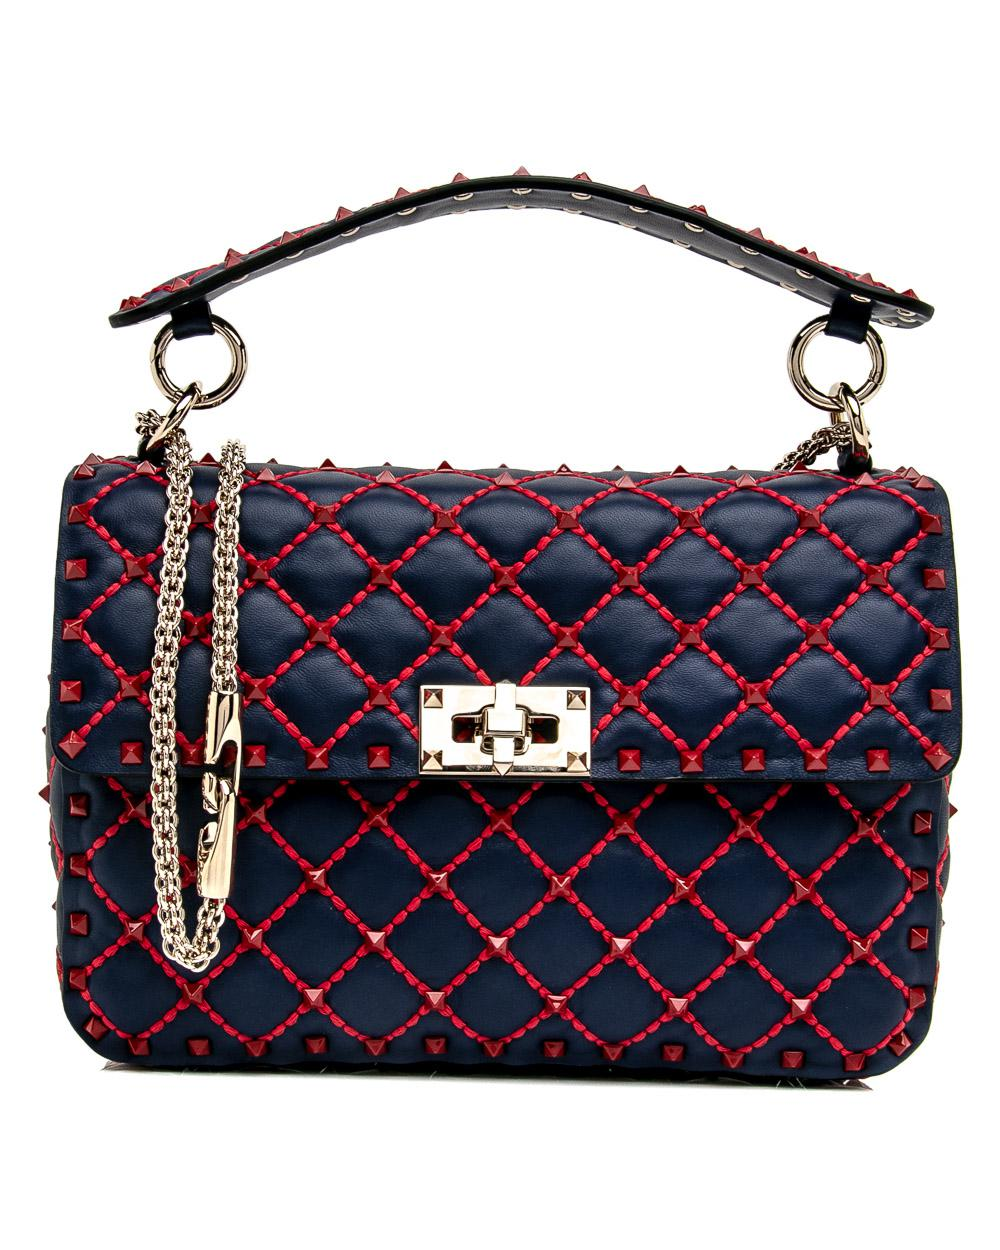 cee05d341139 Lyst - Valentino Medium Blue And Red Rockstud Spike Chain Bag in Blue